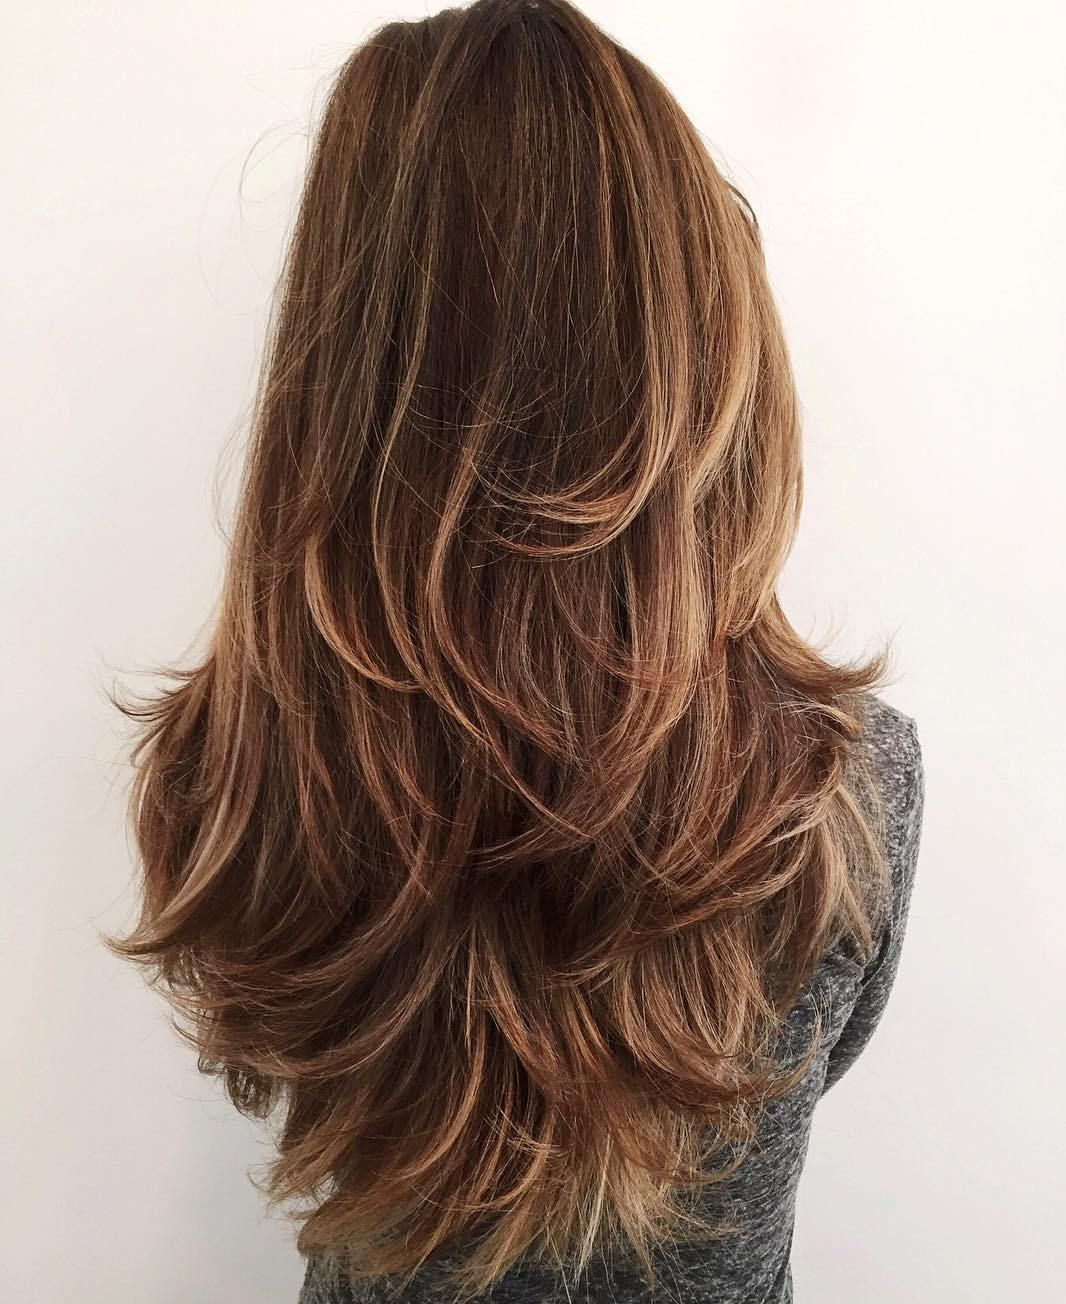 50 lovely long shag haircuts for effortless stylish looks | long